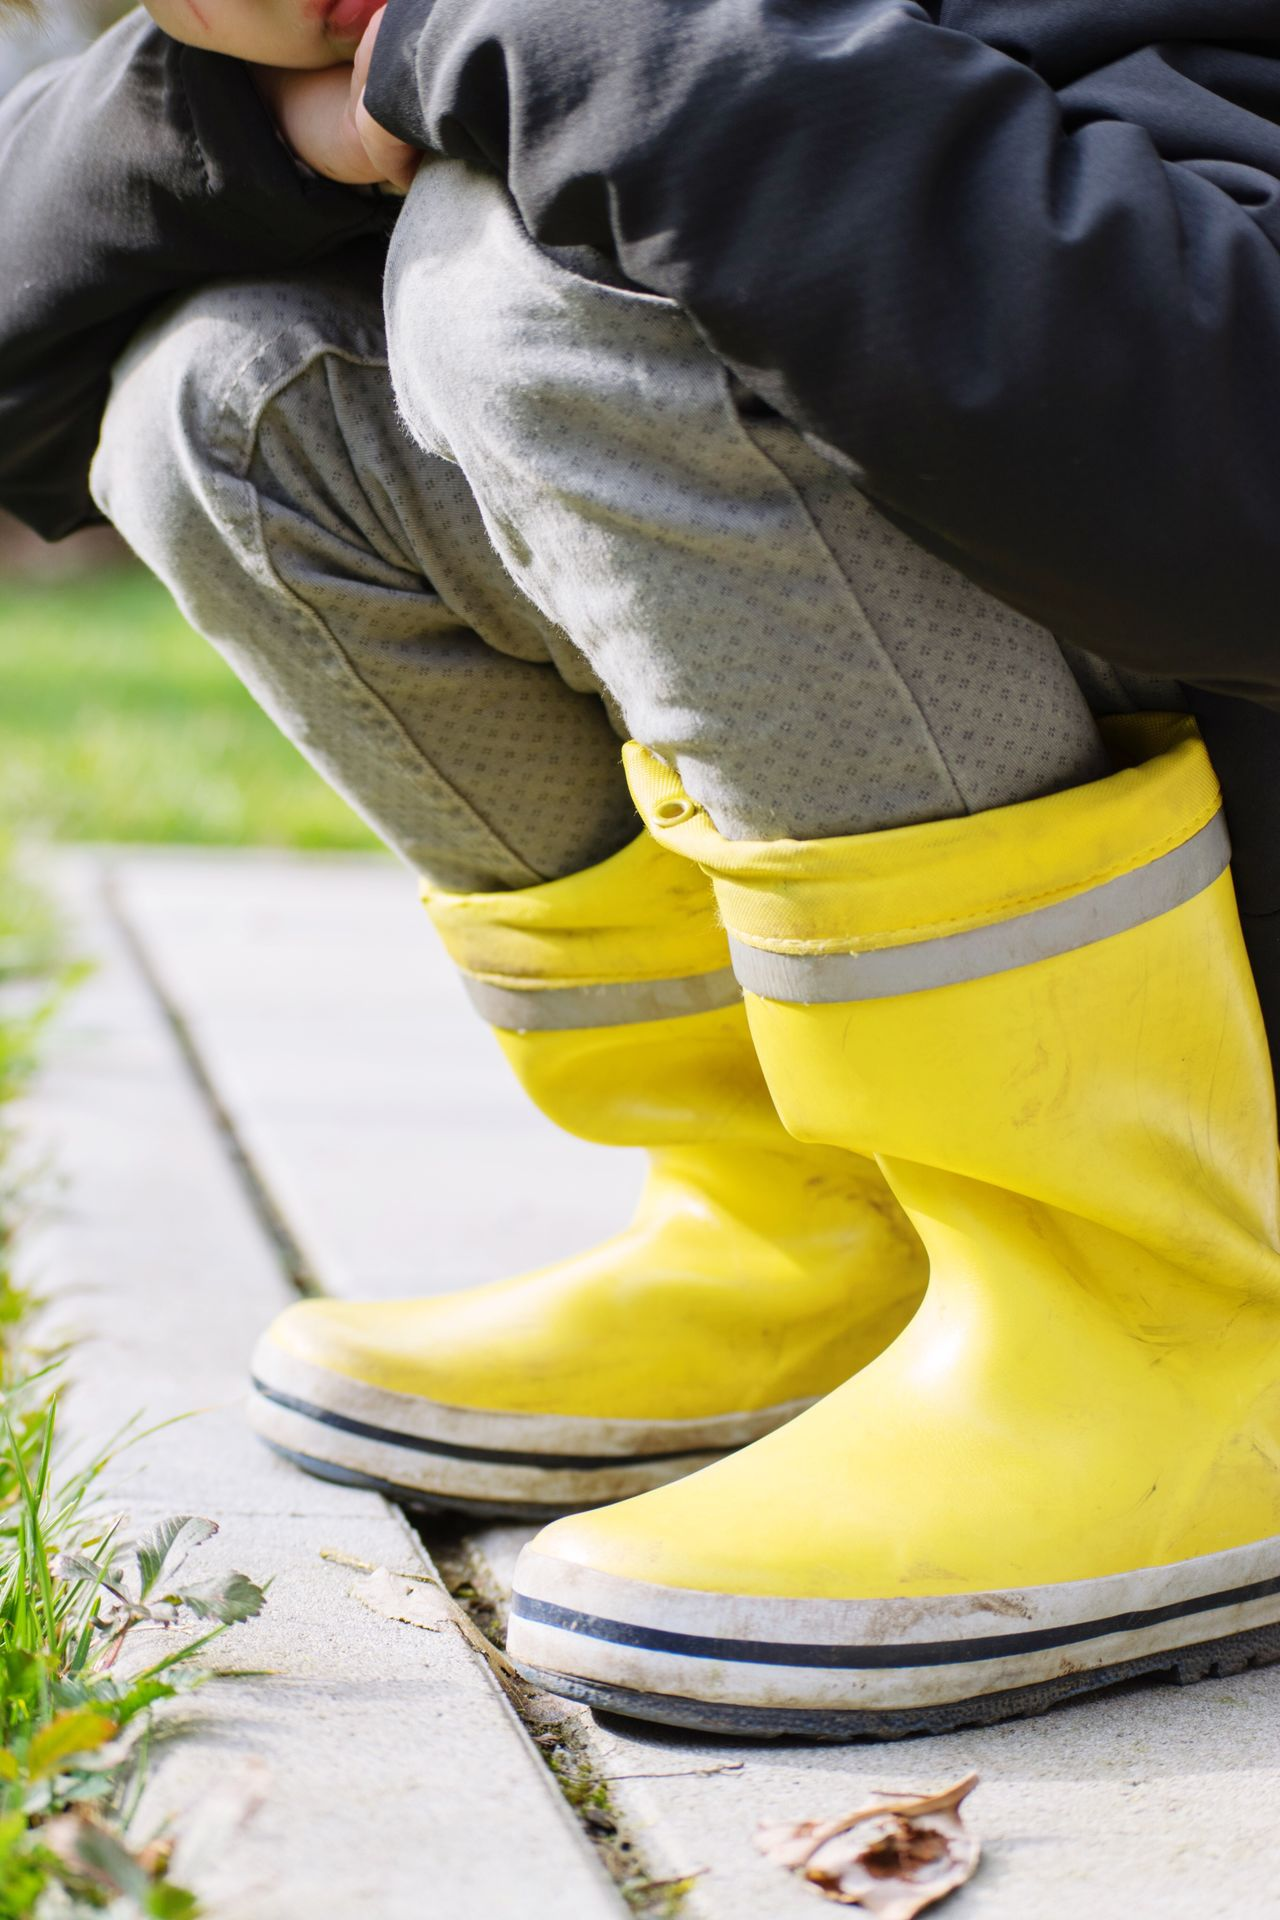 One Person Yellow Human Leg Low Section Outdoors Real People Day Human Body Part Close-up Kids Boots Shoes Rubbers Rubber Boots